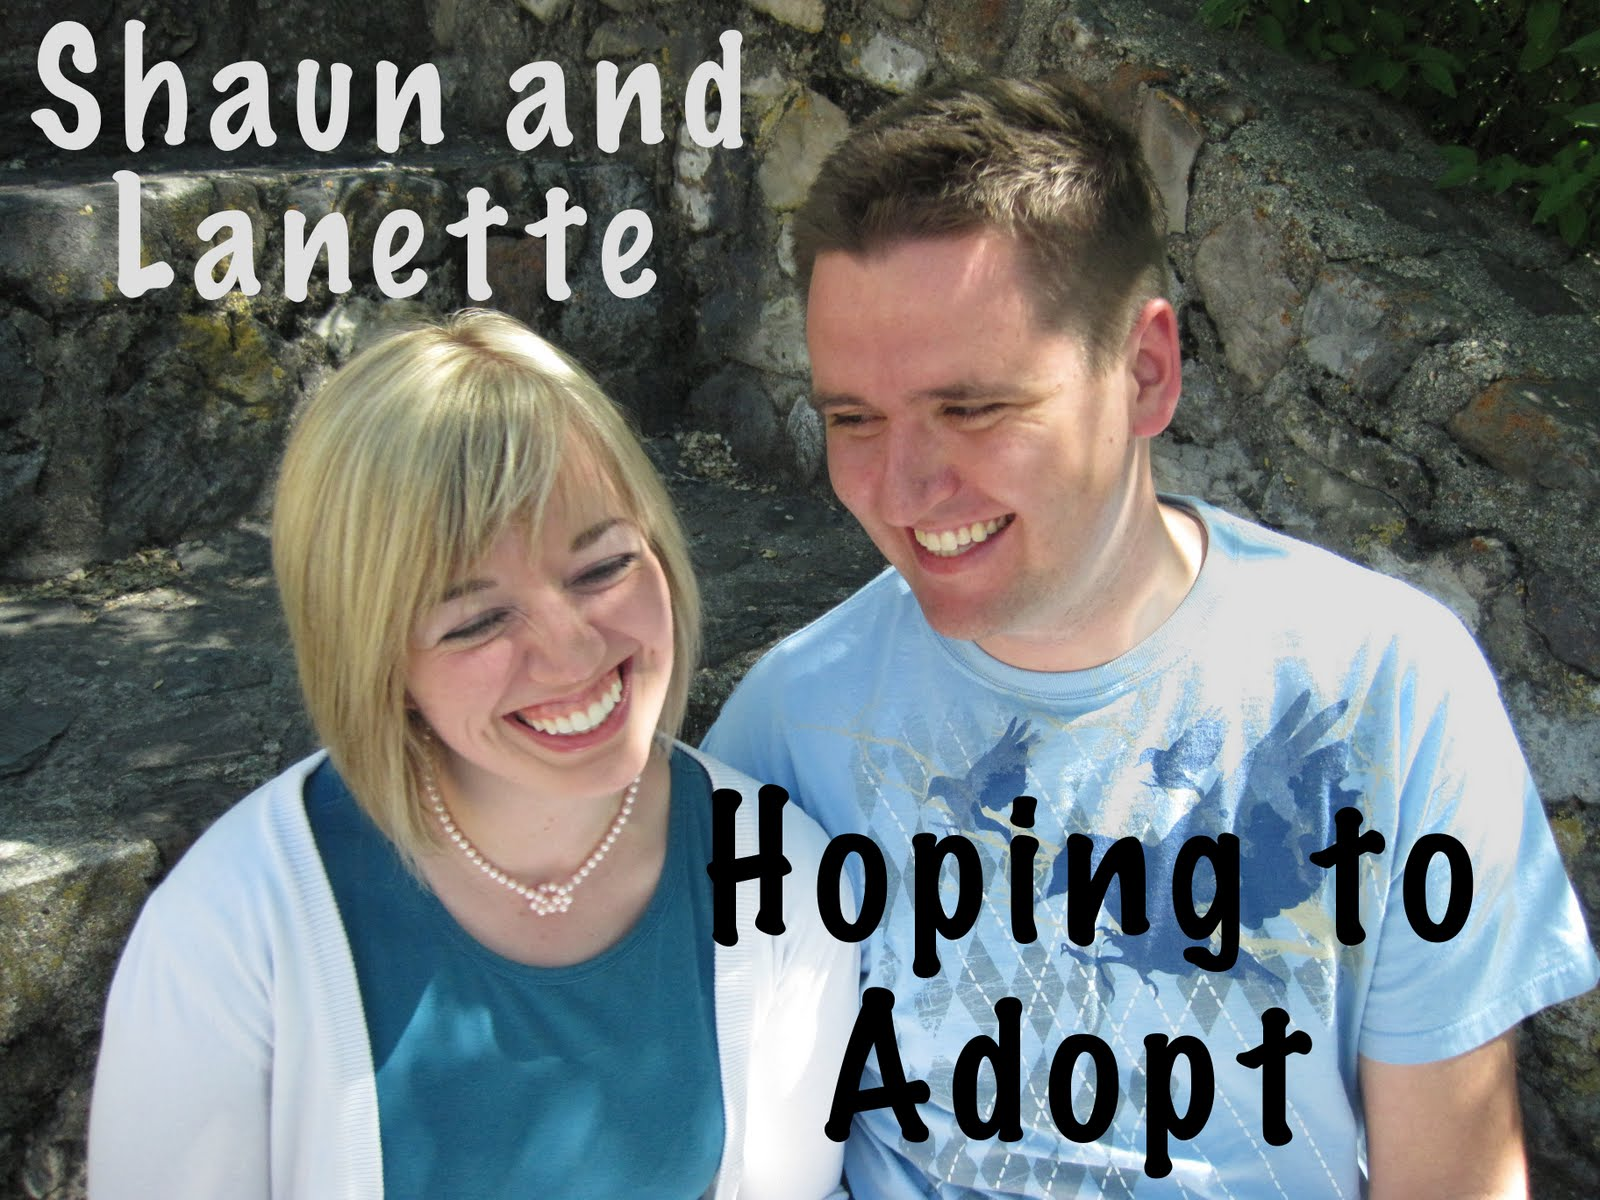 We are hoping to adopt!